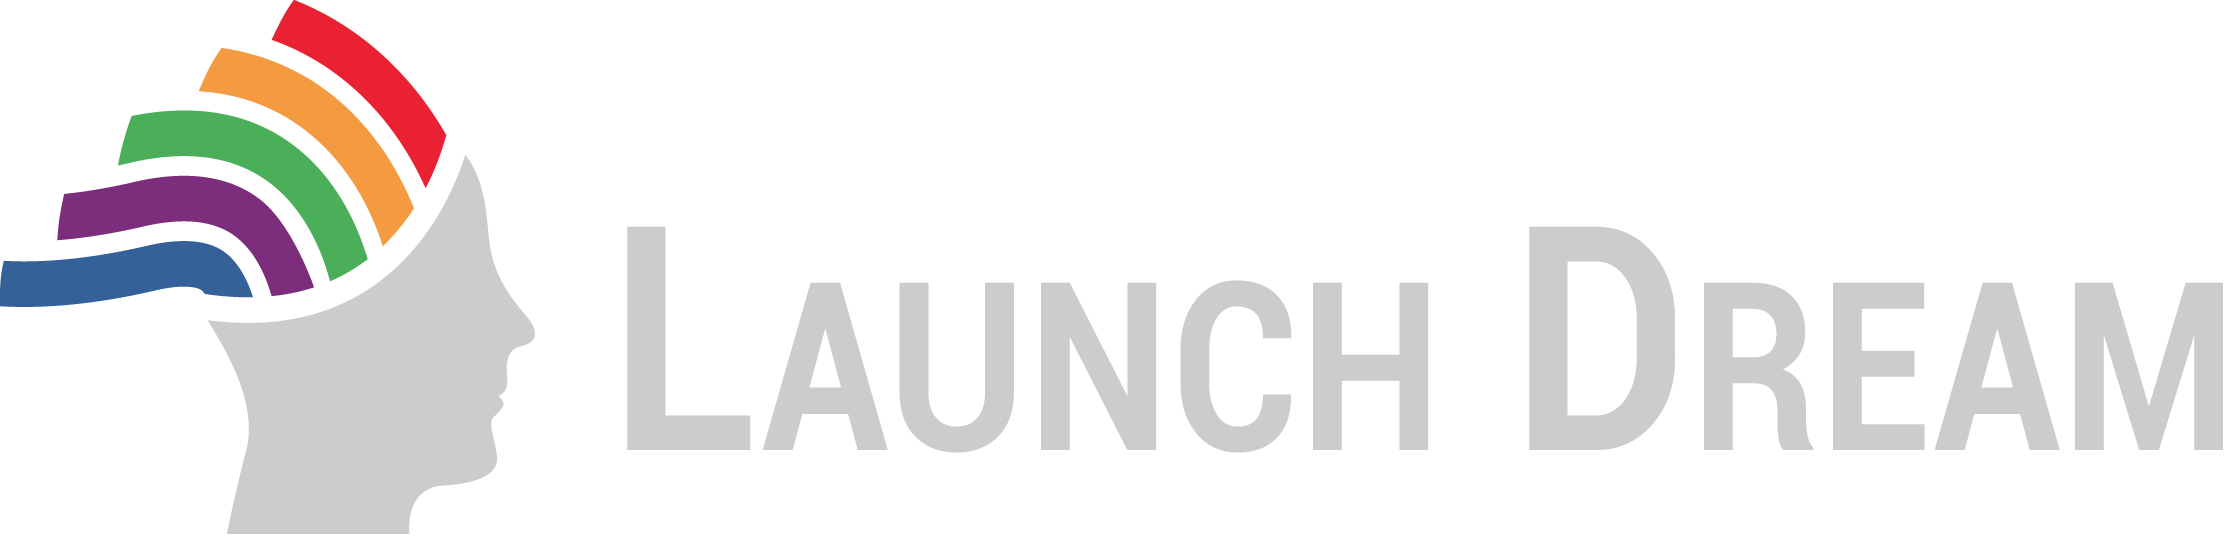 Launch Dream